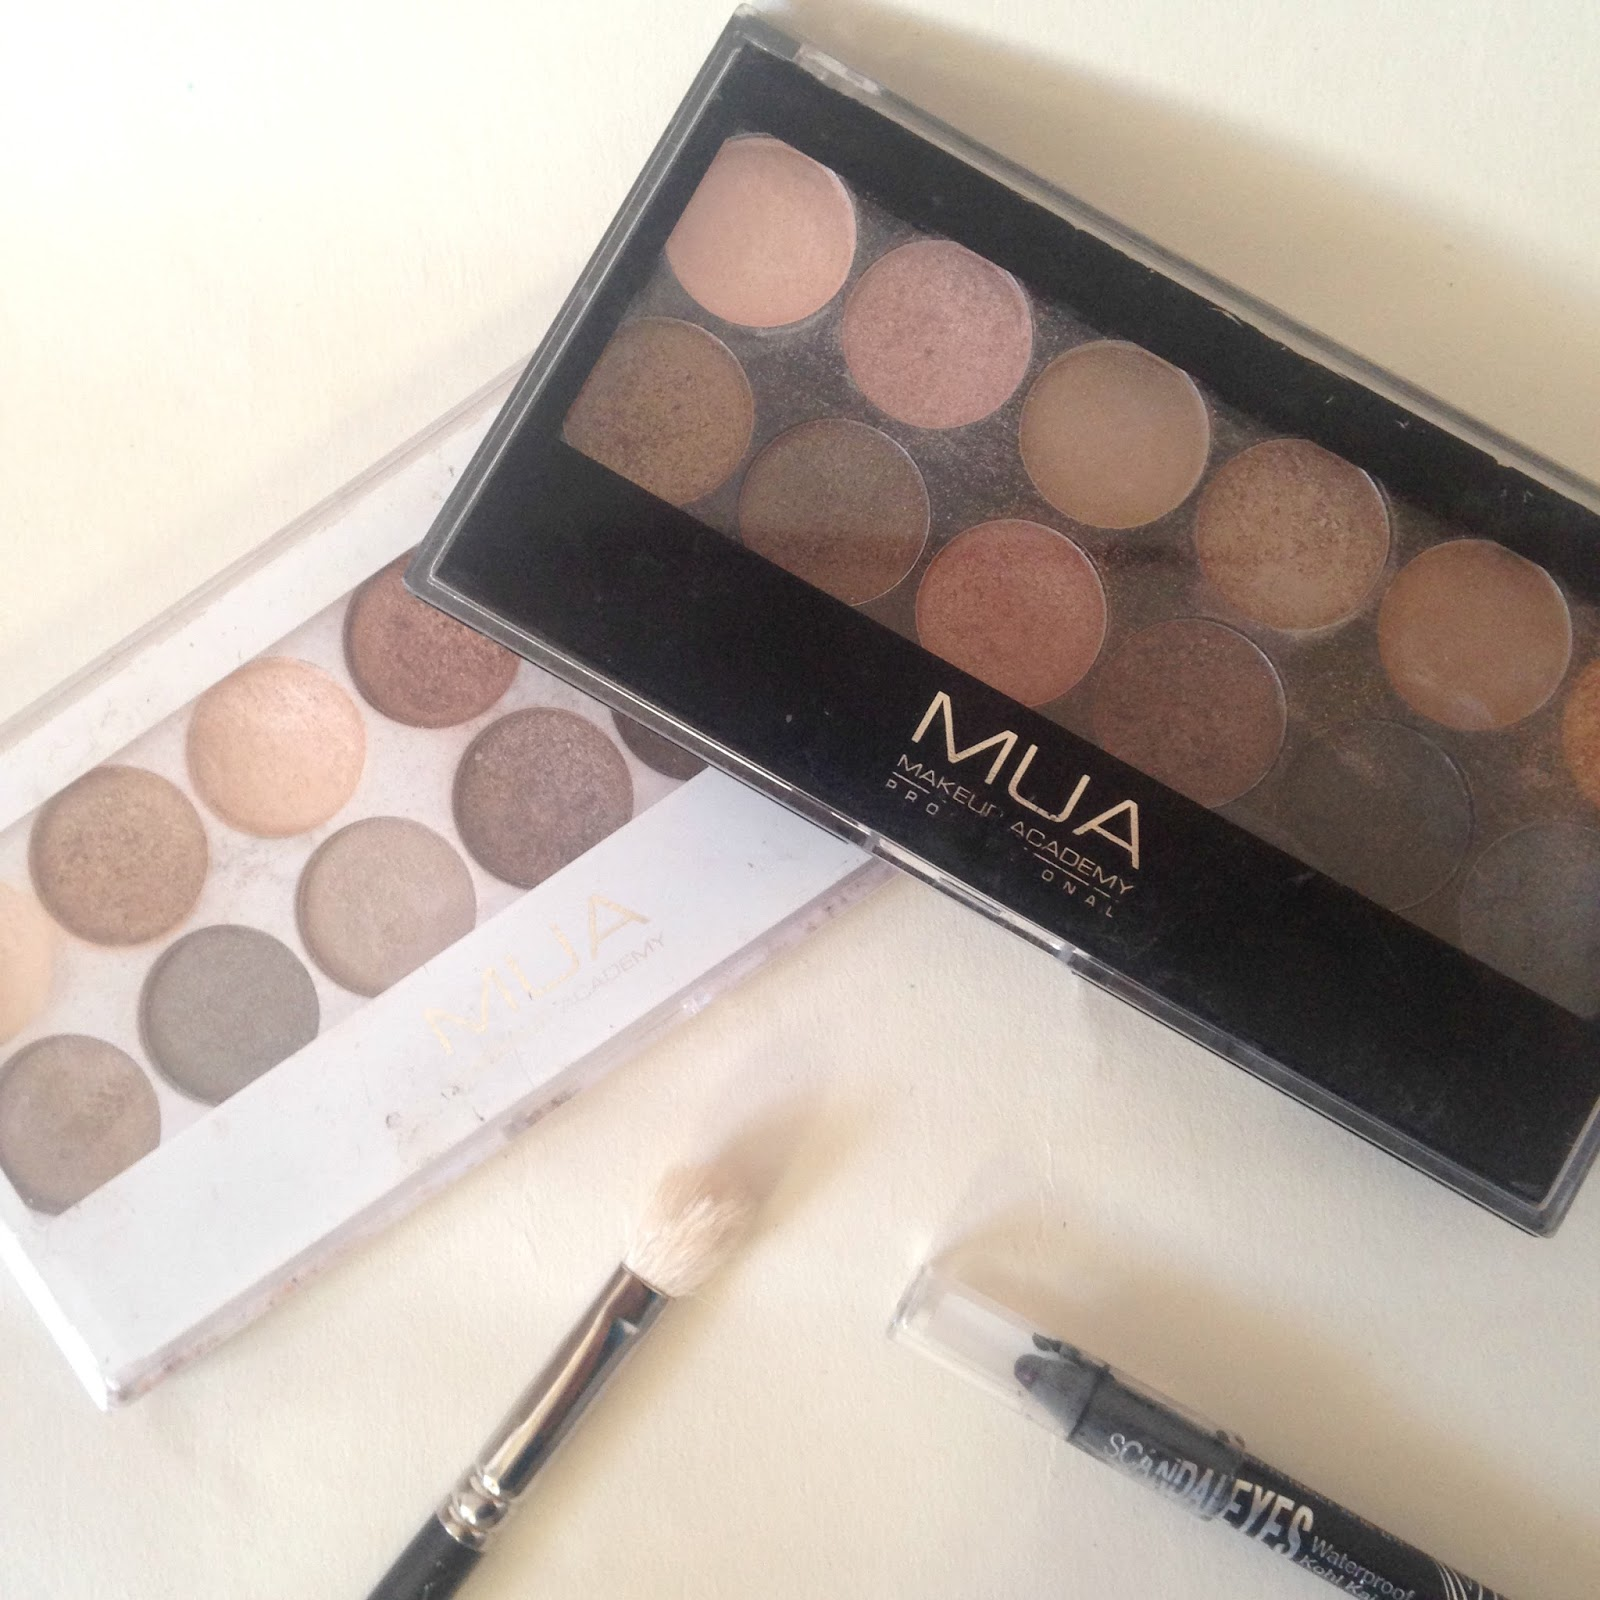 Make Up Academy Palettes